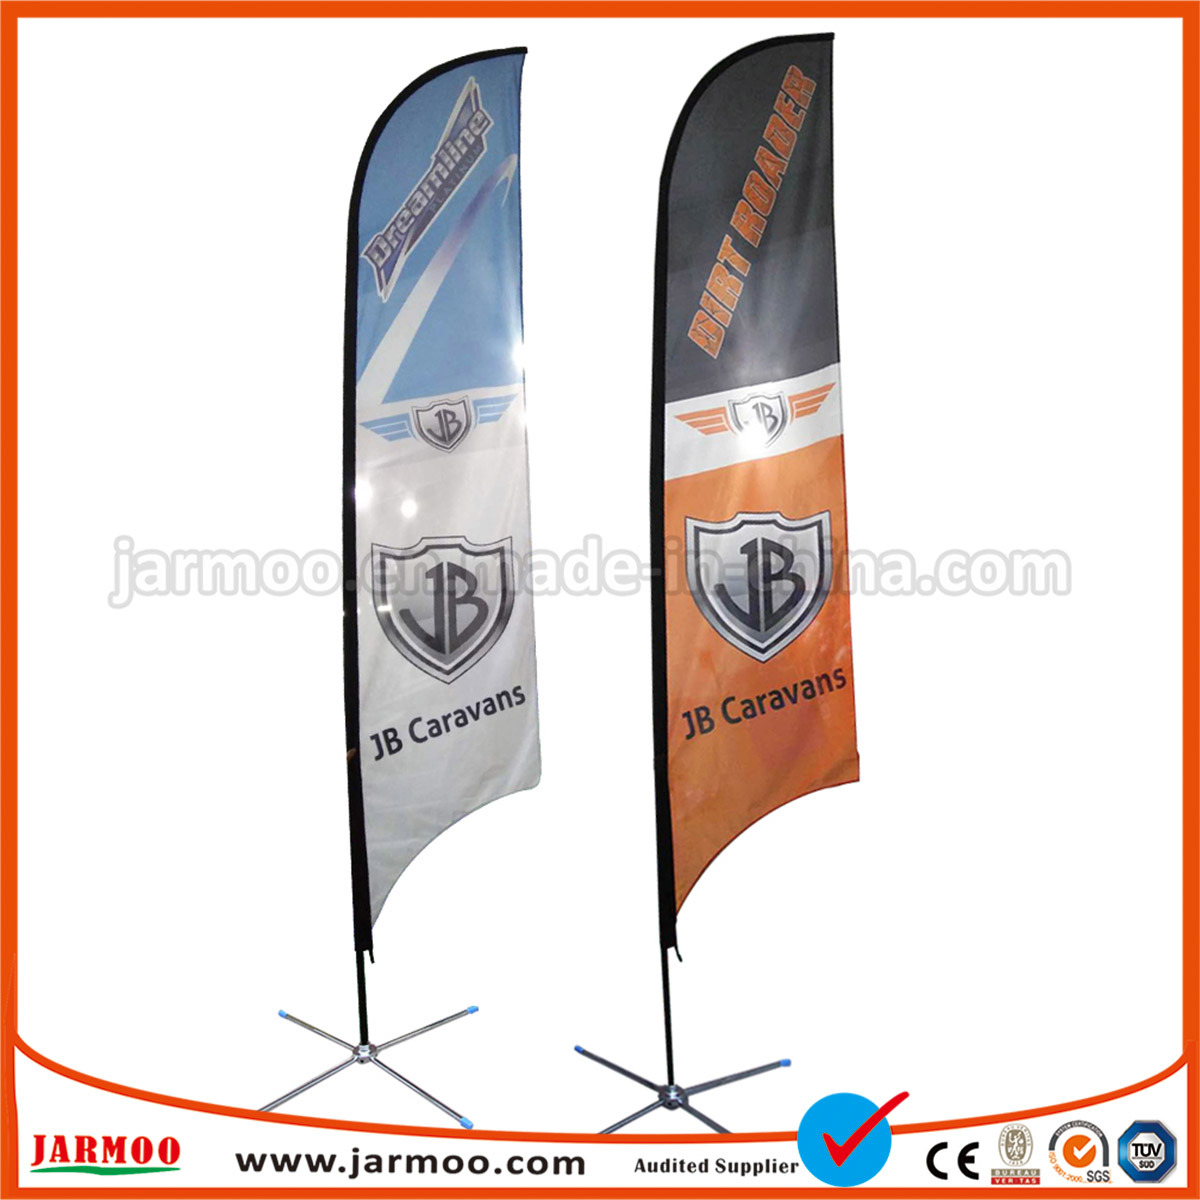 - Style 4 FedEx Double-Sided, Poles and Spike Base Included 10ft Feather Banner